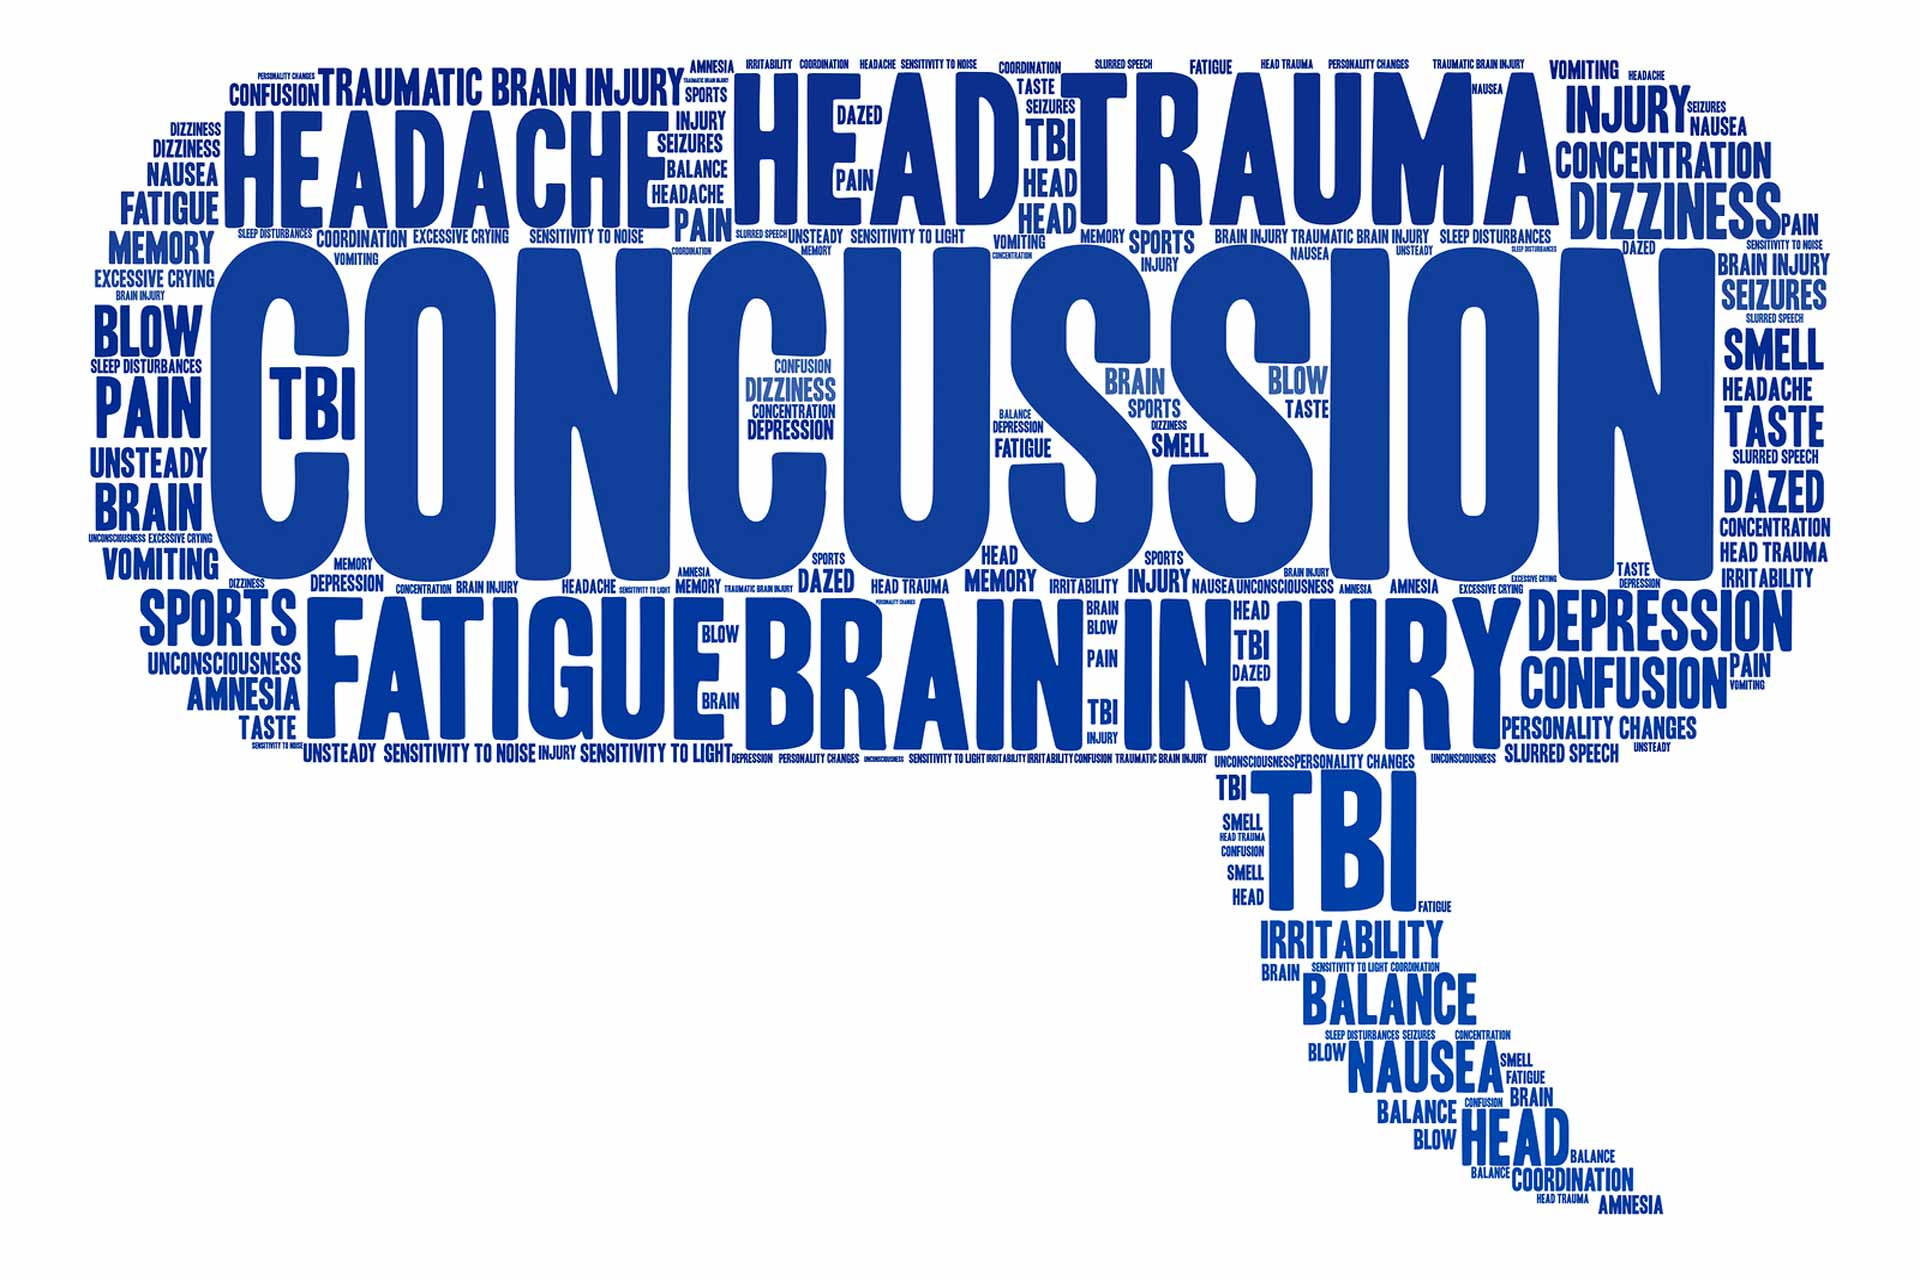 Concussion Management Etobicoke